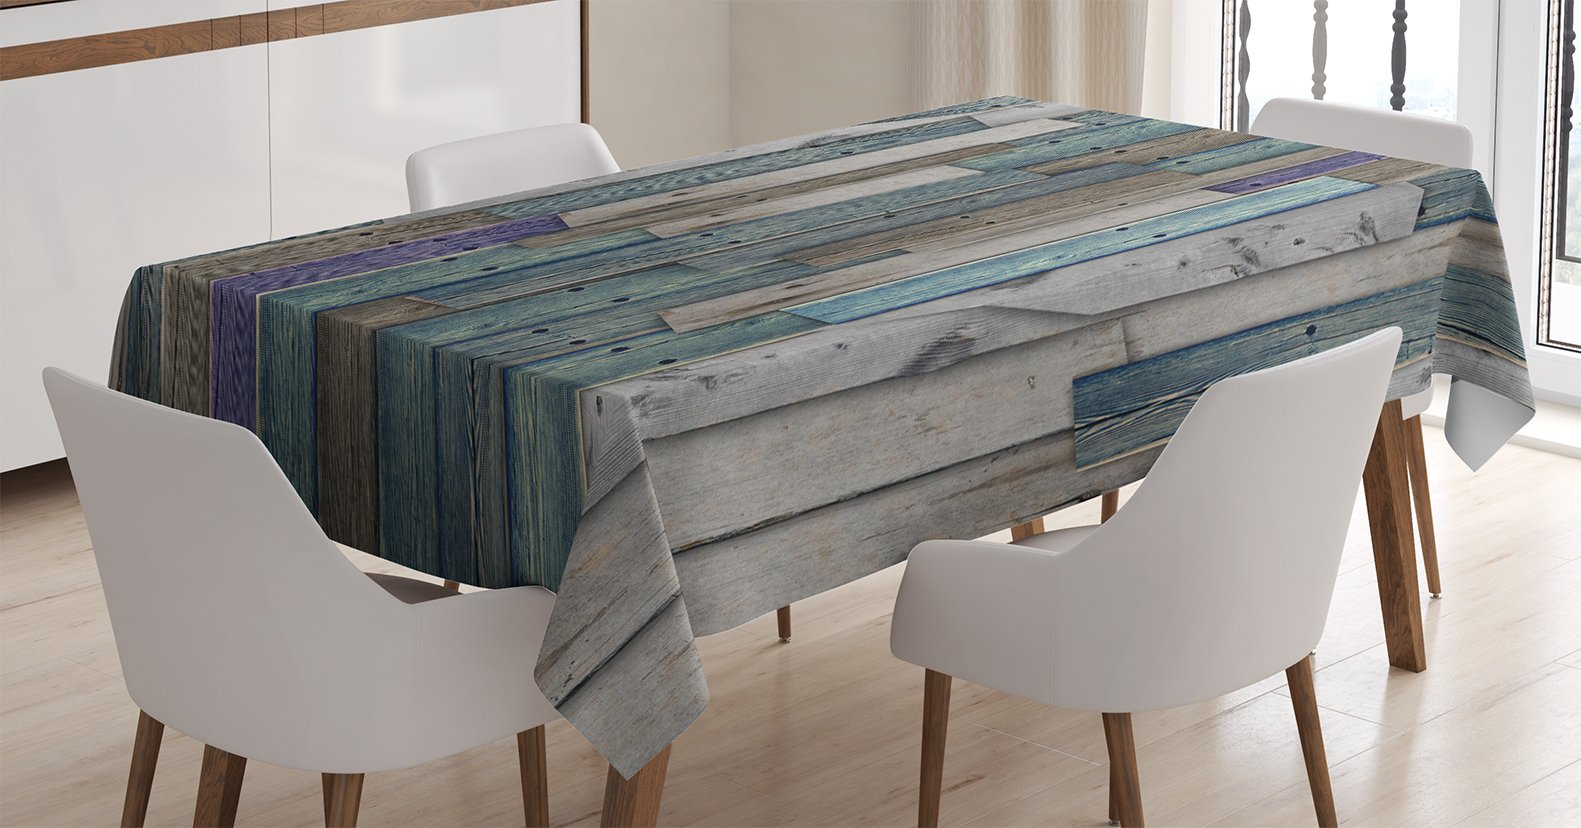 Ambesonne Wooden Tablecloth, Blue Grey Grunge Rustic Planks Barn House Wood and Nails Lodge Hardwood Graphic Print, Dining Room Kitchen Rectangular Table Cover, 52 X 70 inches